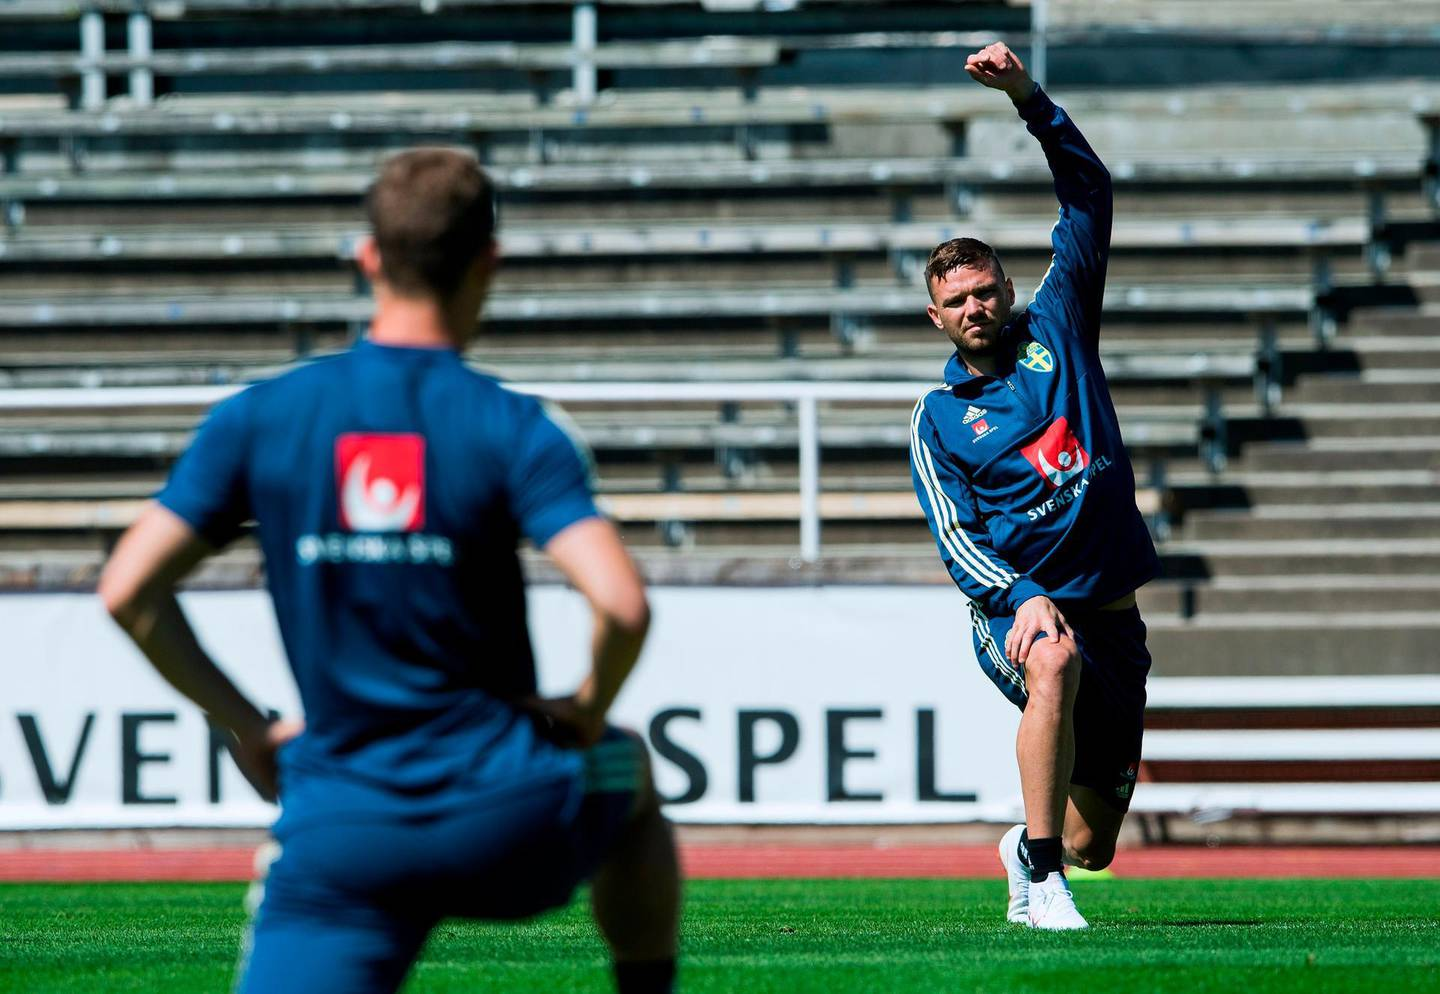 Sweden's forward Marcus Berg takes part in a training session, in preparation for the 2018 Football World Cup in Russia on May 24, 2018 in Stockholm. The Swedish team will stay in Sweden for training until they travel to Russia on June 12. / AFP / Jonathan NACKSTRAND